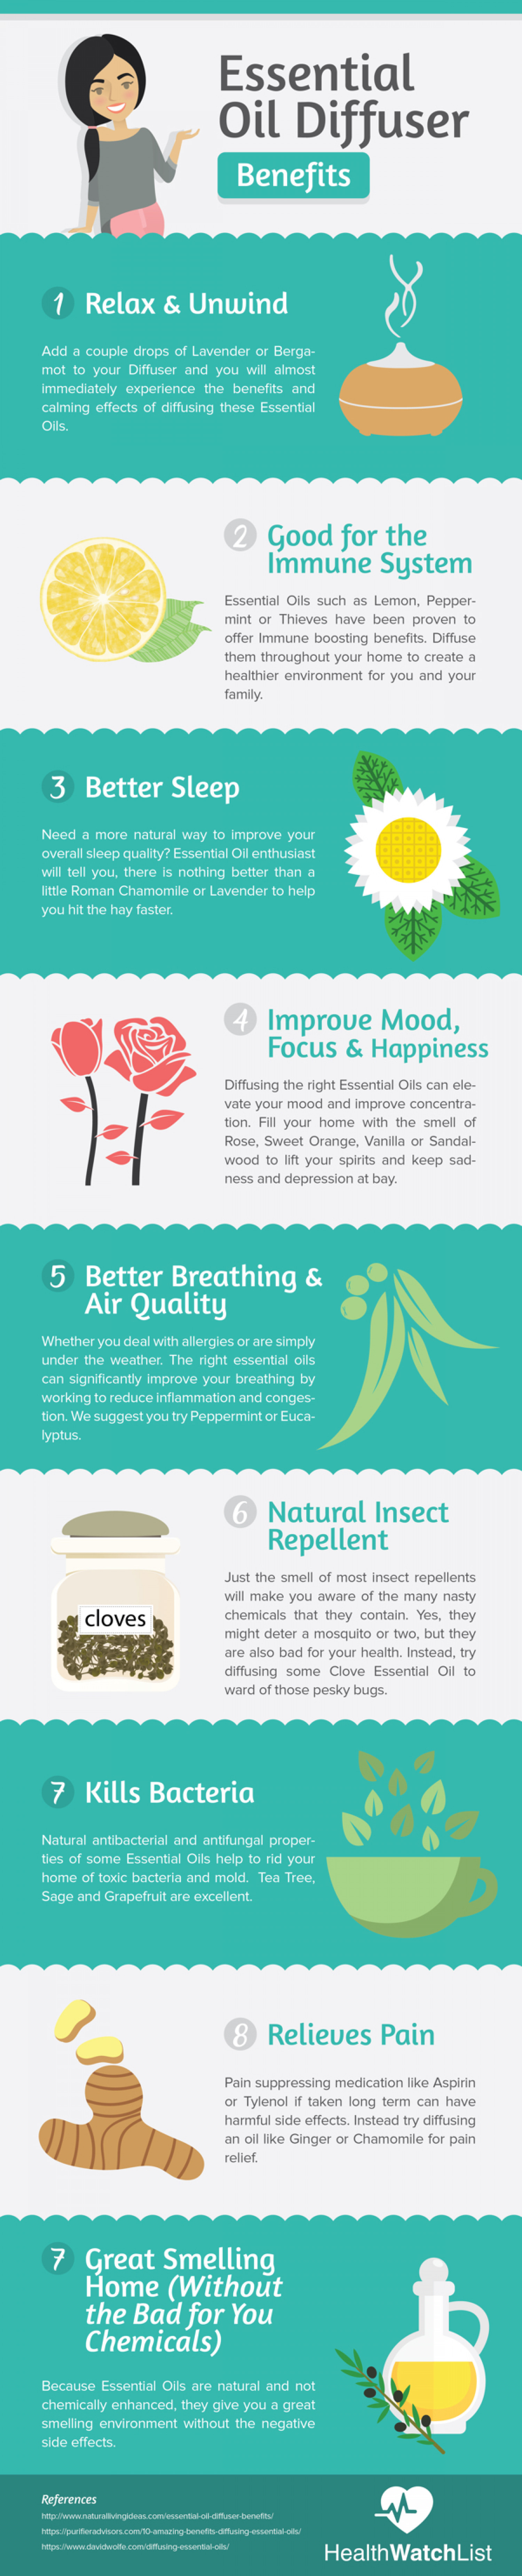 Oil Diffuser Benefits Infographic